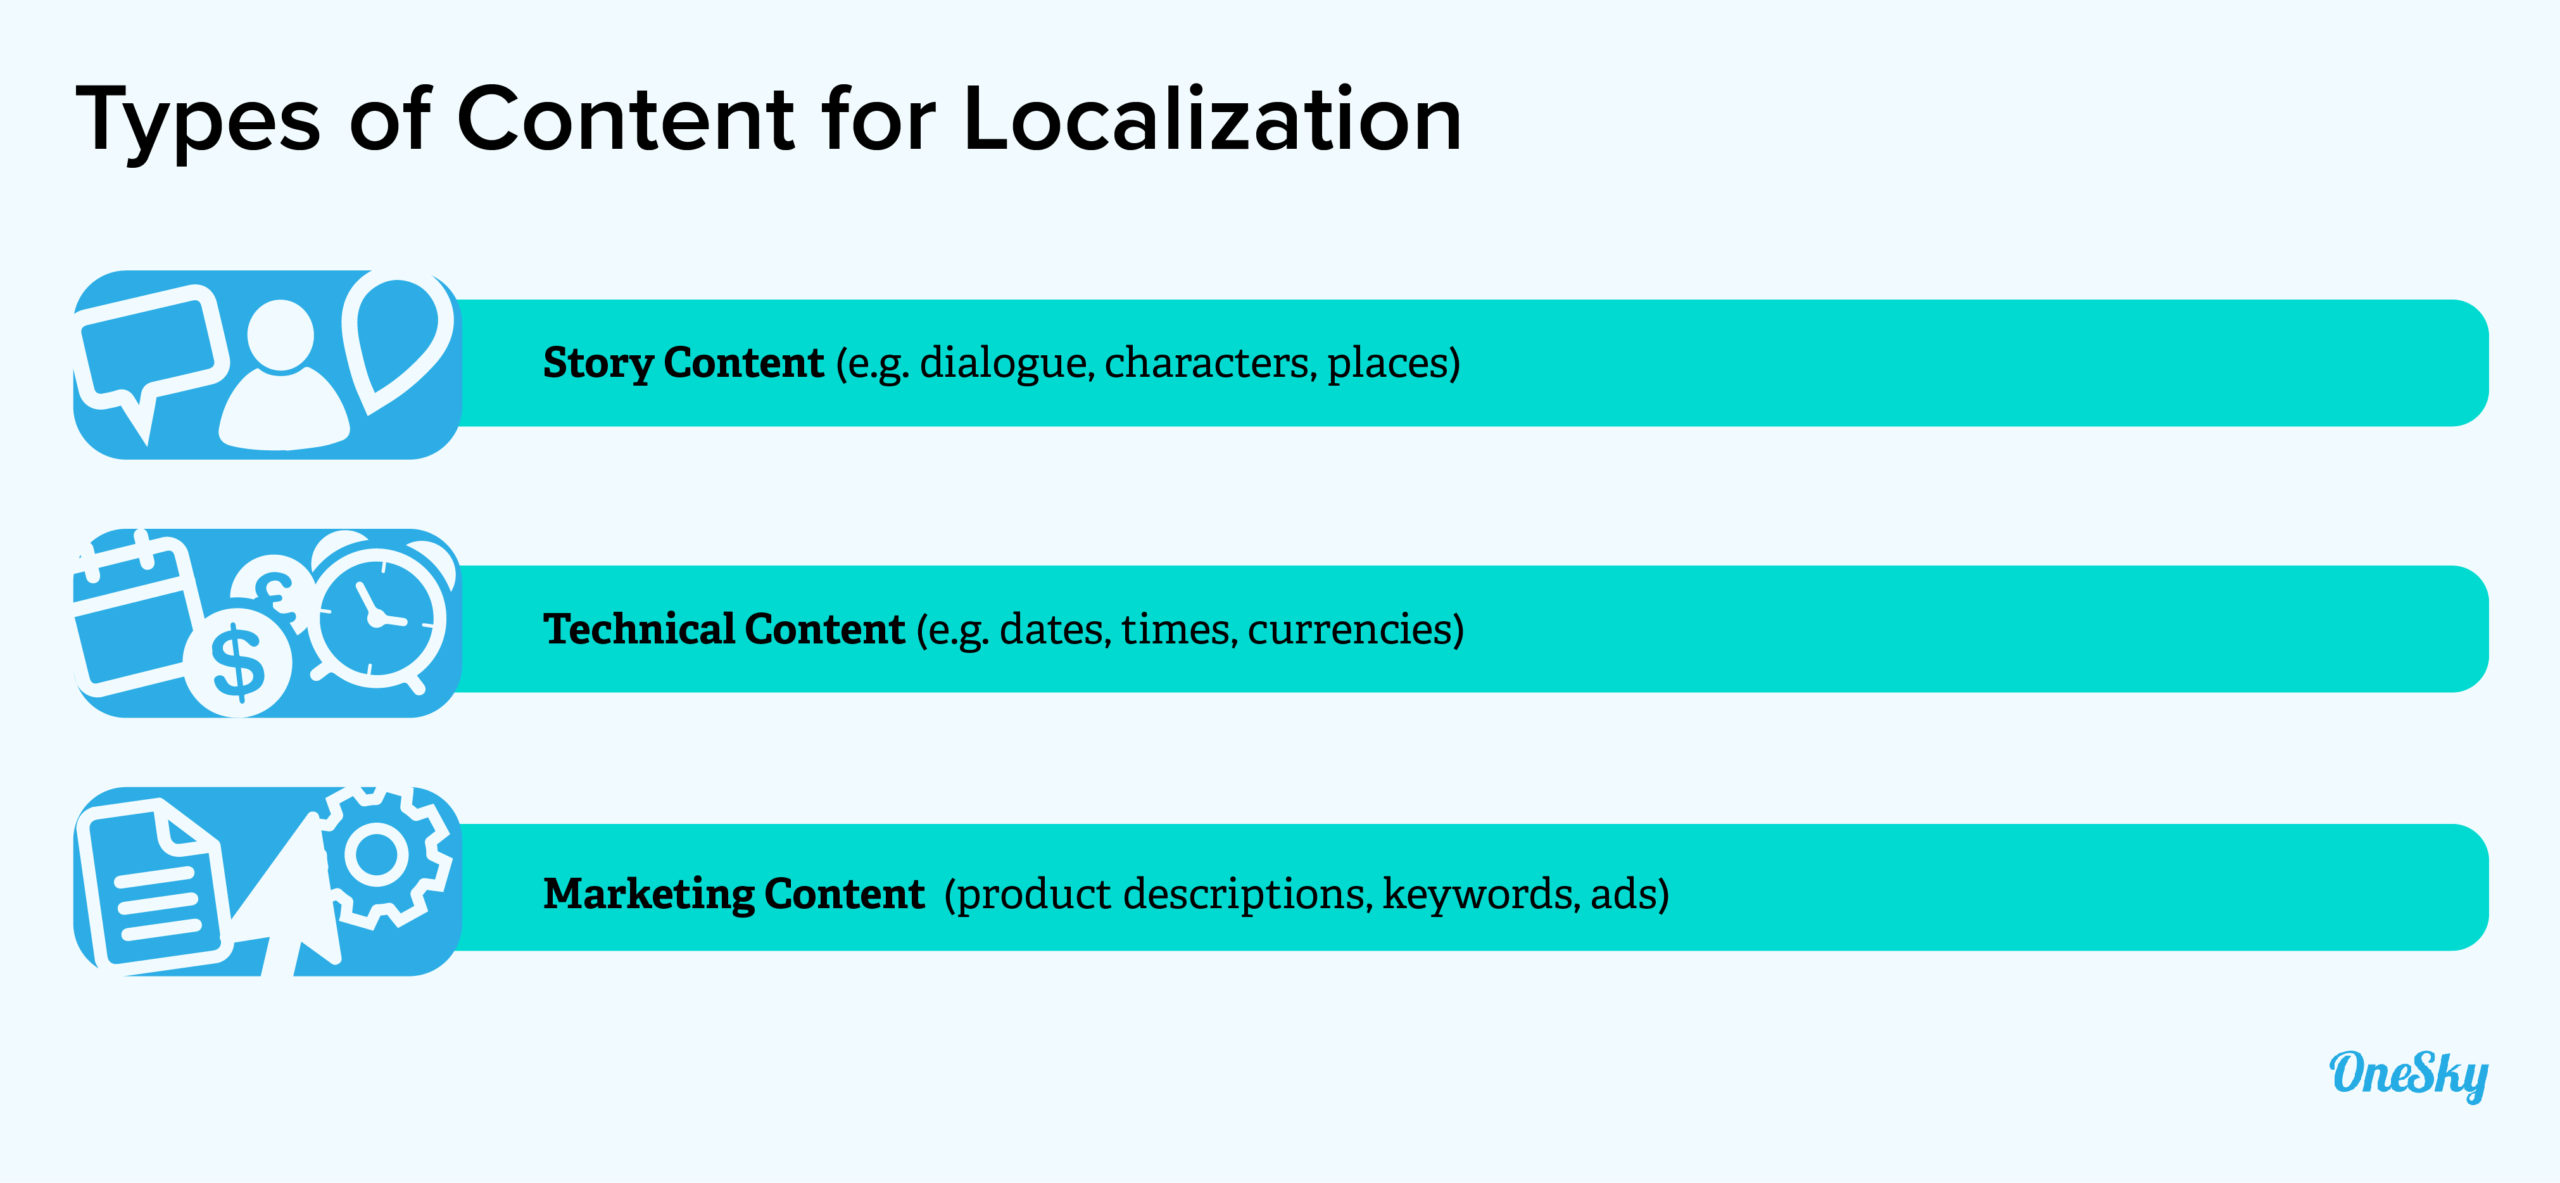 types of content for localization